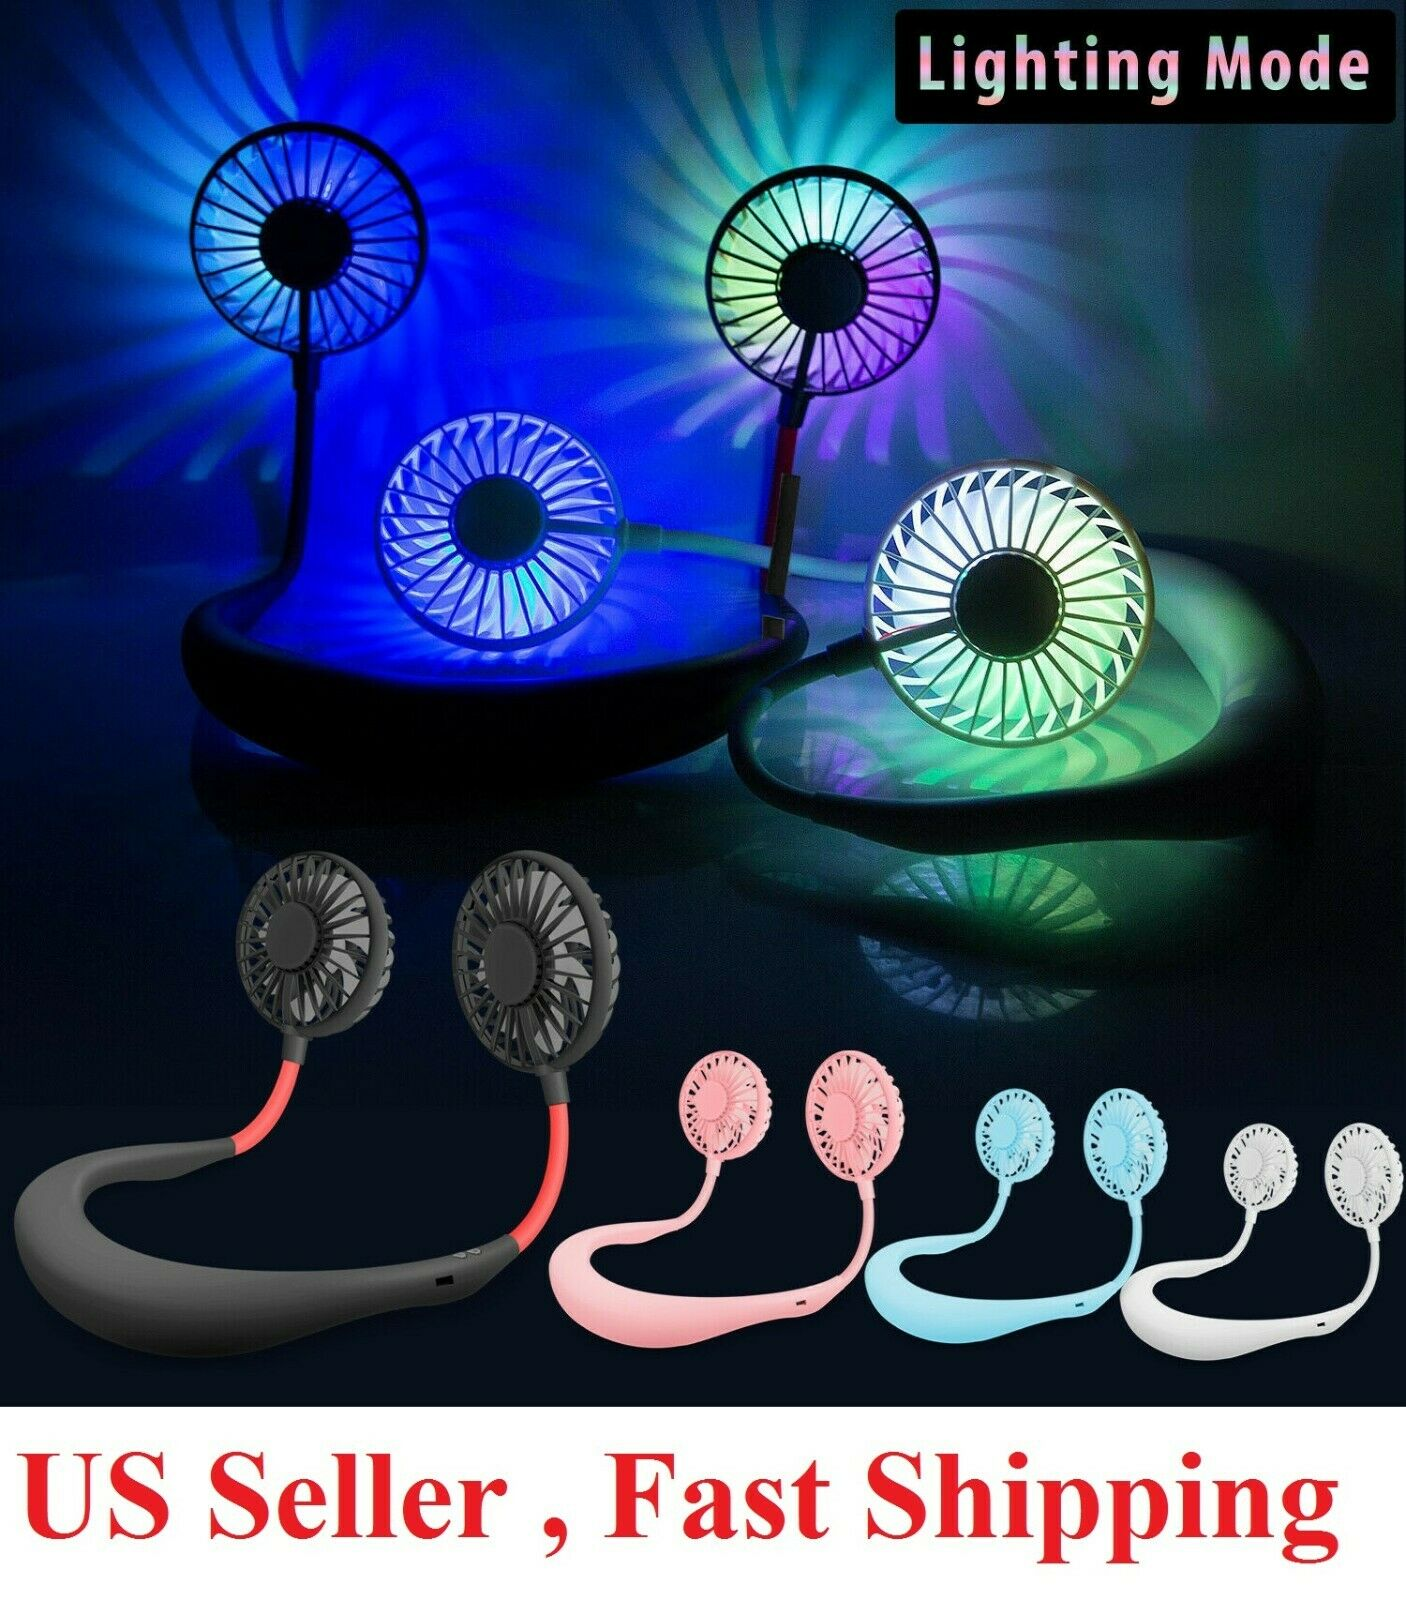 Portable Rechargeable Neckband Neck Hanging Dual Cooling Mini Fan Personal LED , Heating, Cooling & Air